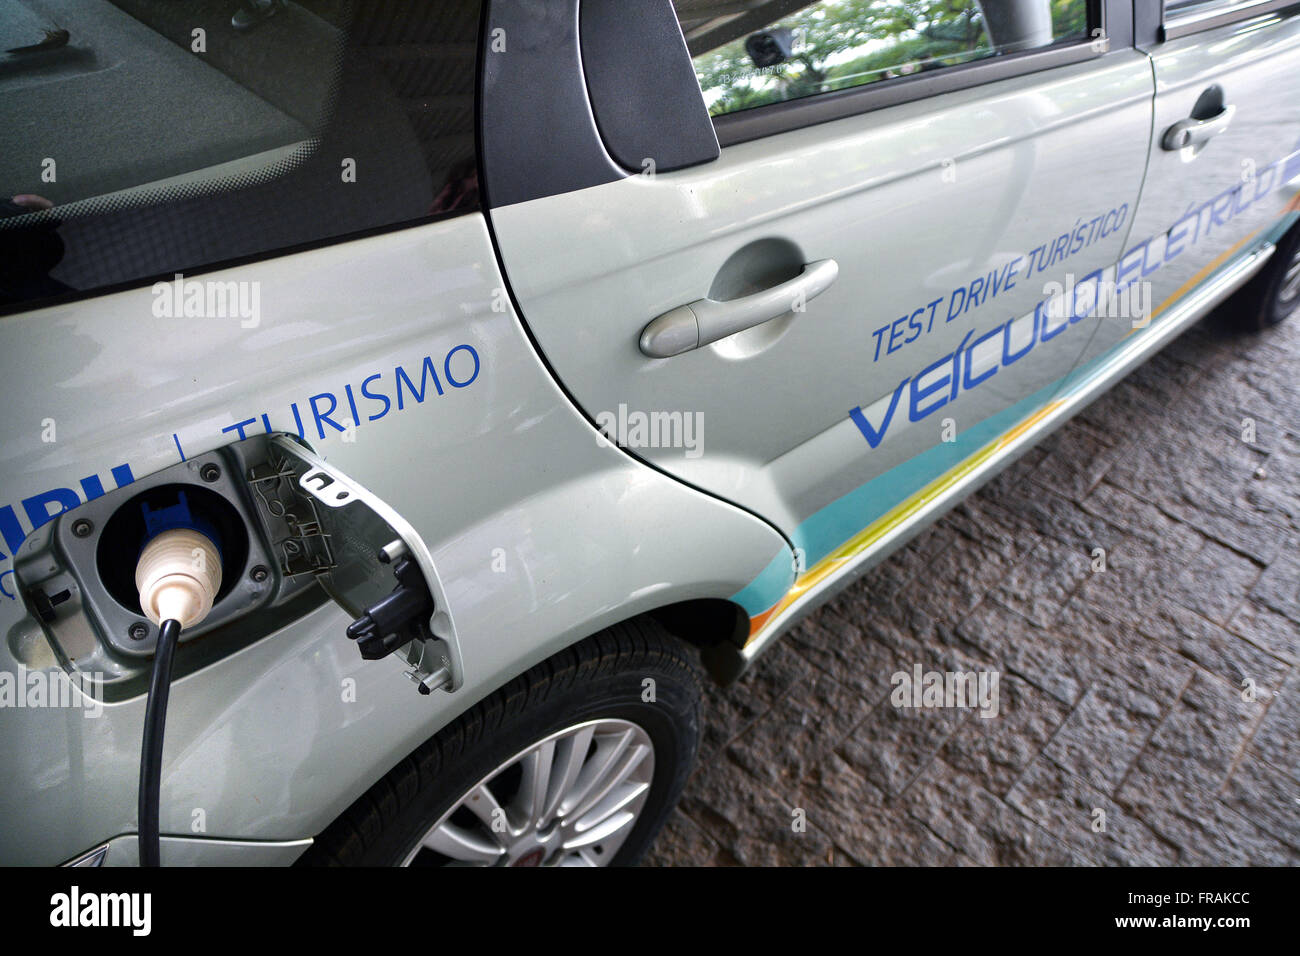 Detail of prototype electric vehicle being fueled at Itaipu Hydroelectric Plant - Stock Image